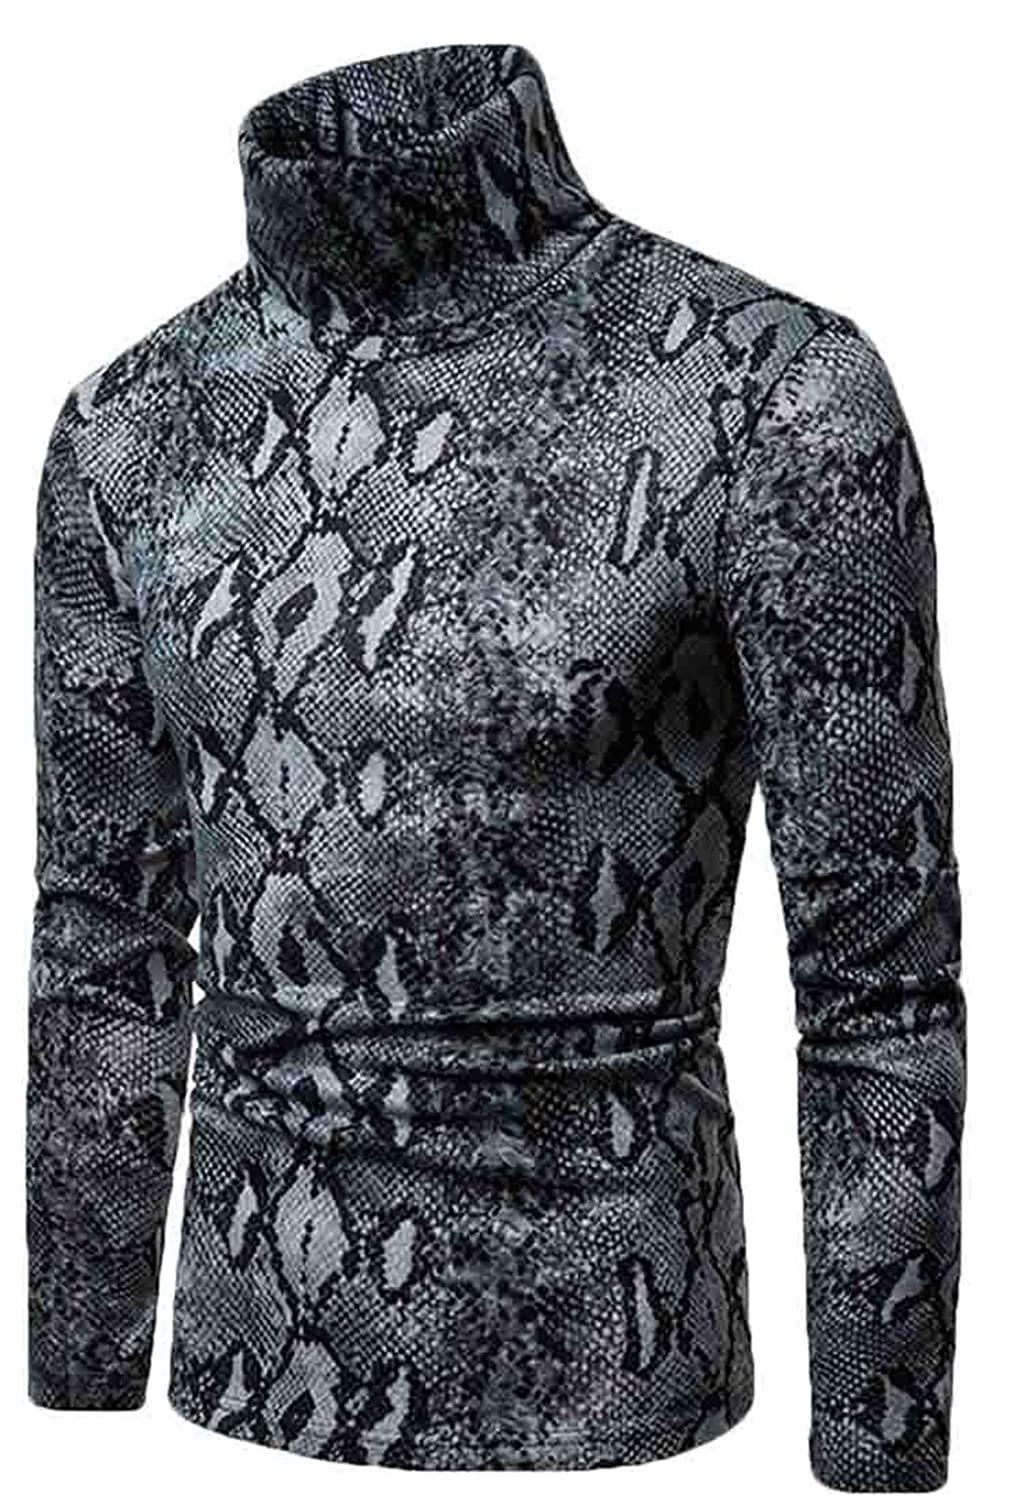 Frieed Men Turtleneck Warm Leopard Winter Long Sleeve Tops Pullover Knitting Sweater